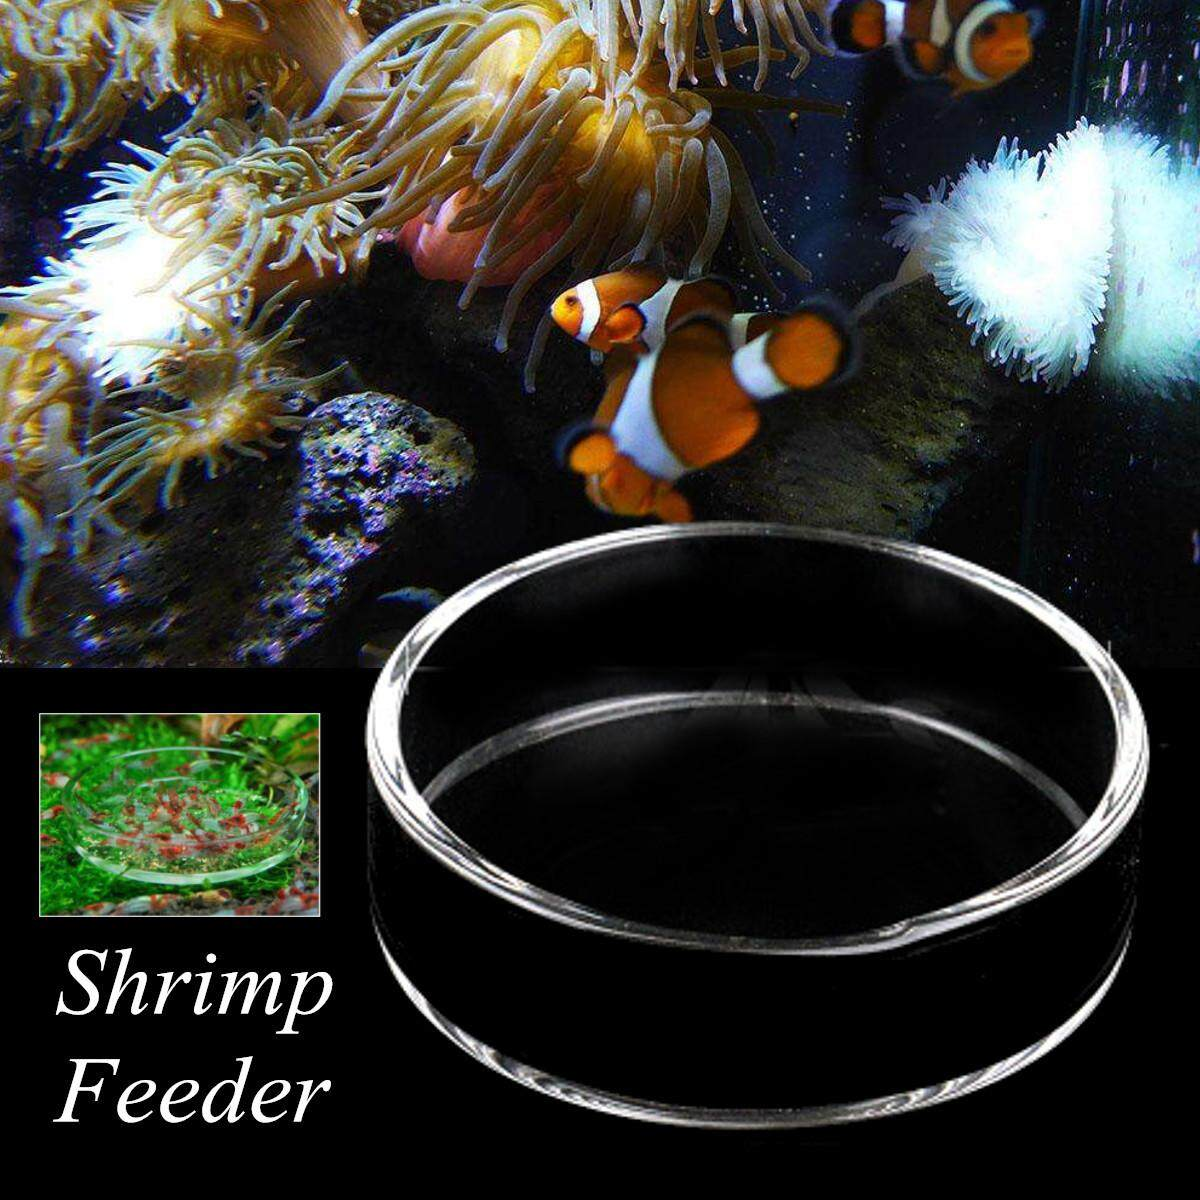 Aquarium Fish Tank Clear Acrylic Shrimp Feeding Food Dish Feeder Tray Glass Container  9cm - Intl By Audew.